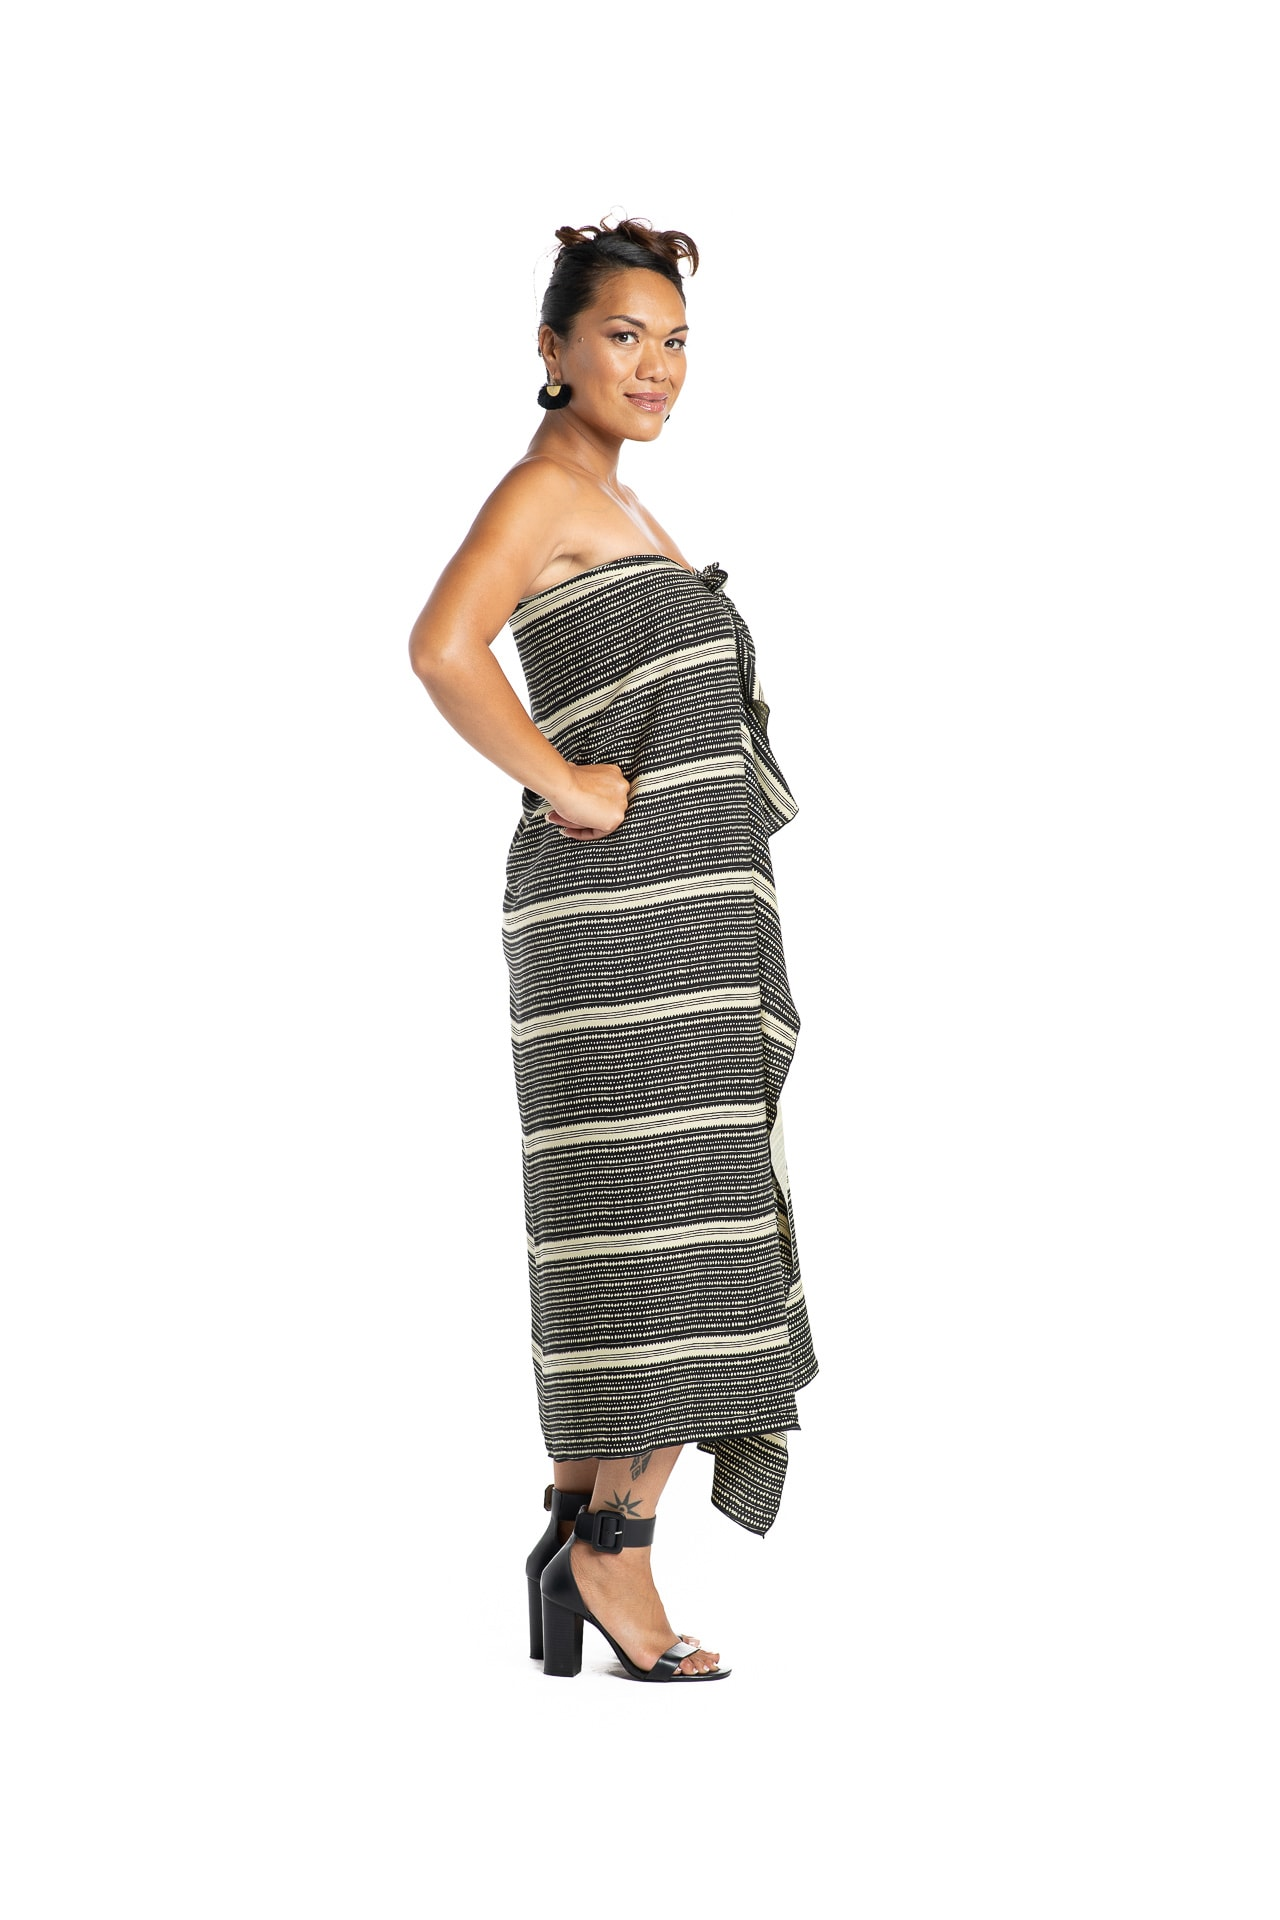 Model wearing Pareo in Hoonionio Sage Green and Black - Side View